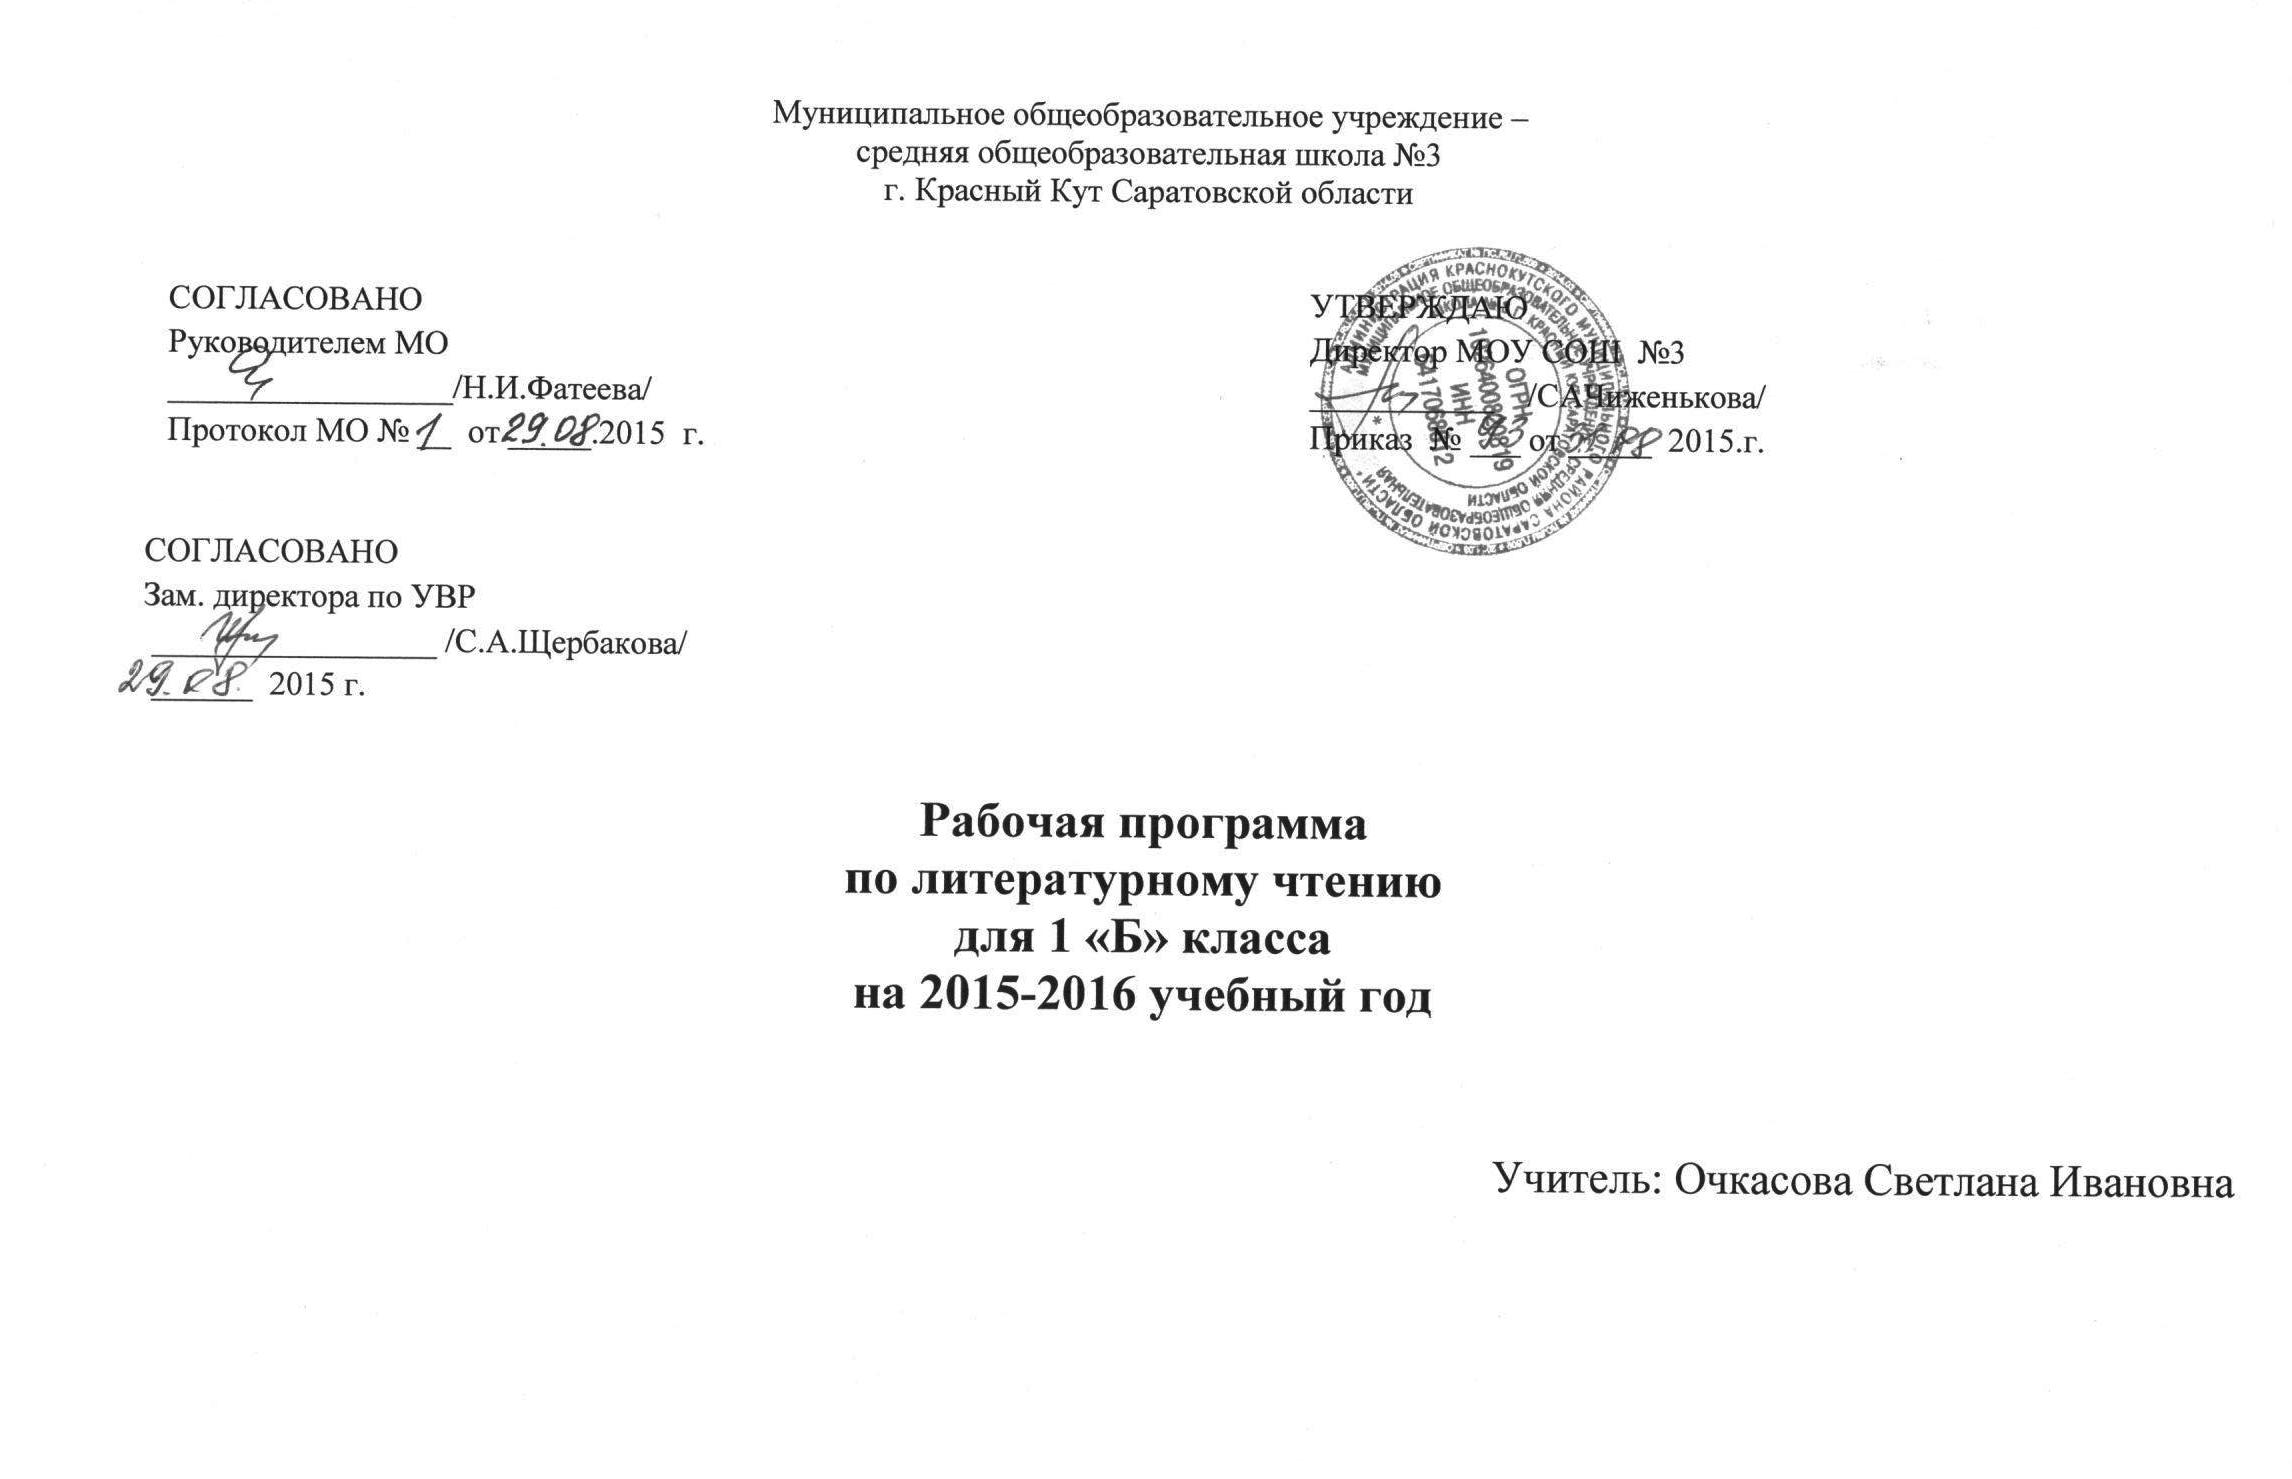 C:\Documents and Settings\Светлана Ивановна\Local Settings\Temporary Internet Files\Content.Word\л.jpg